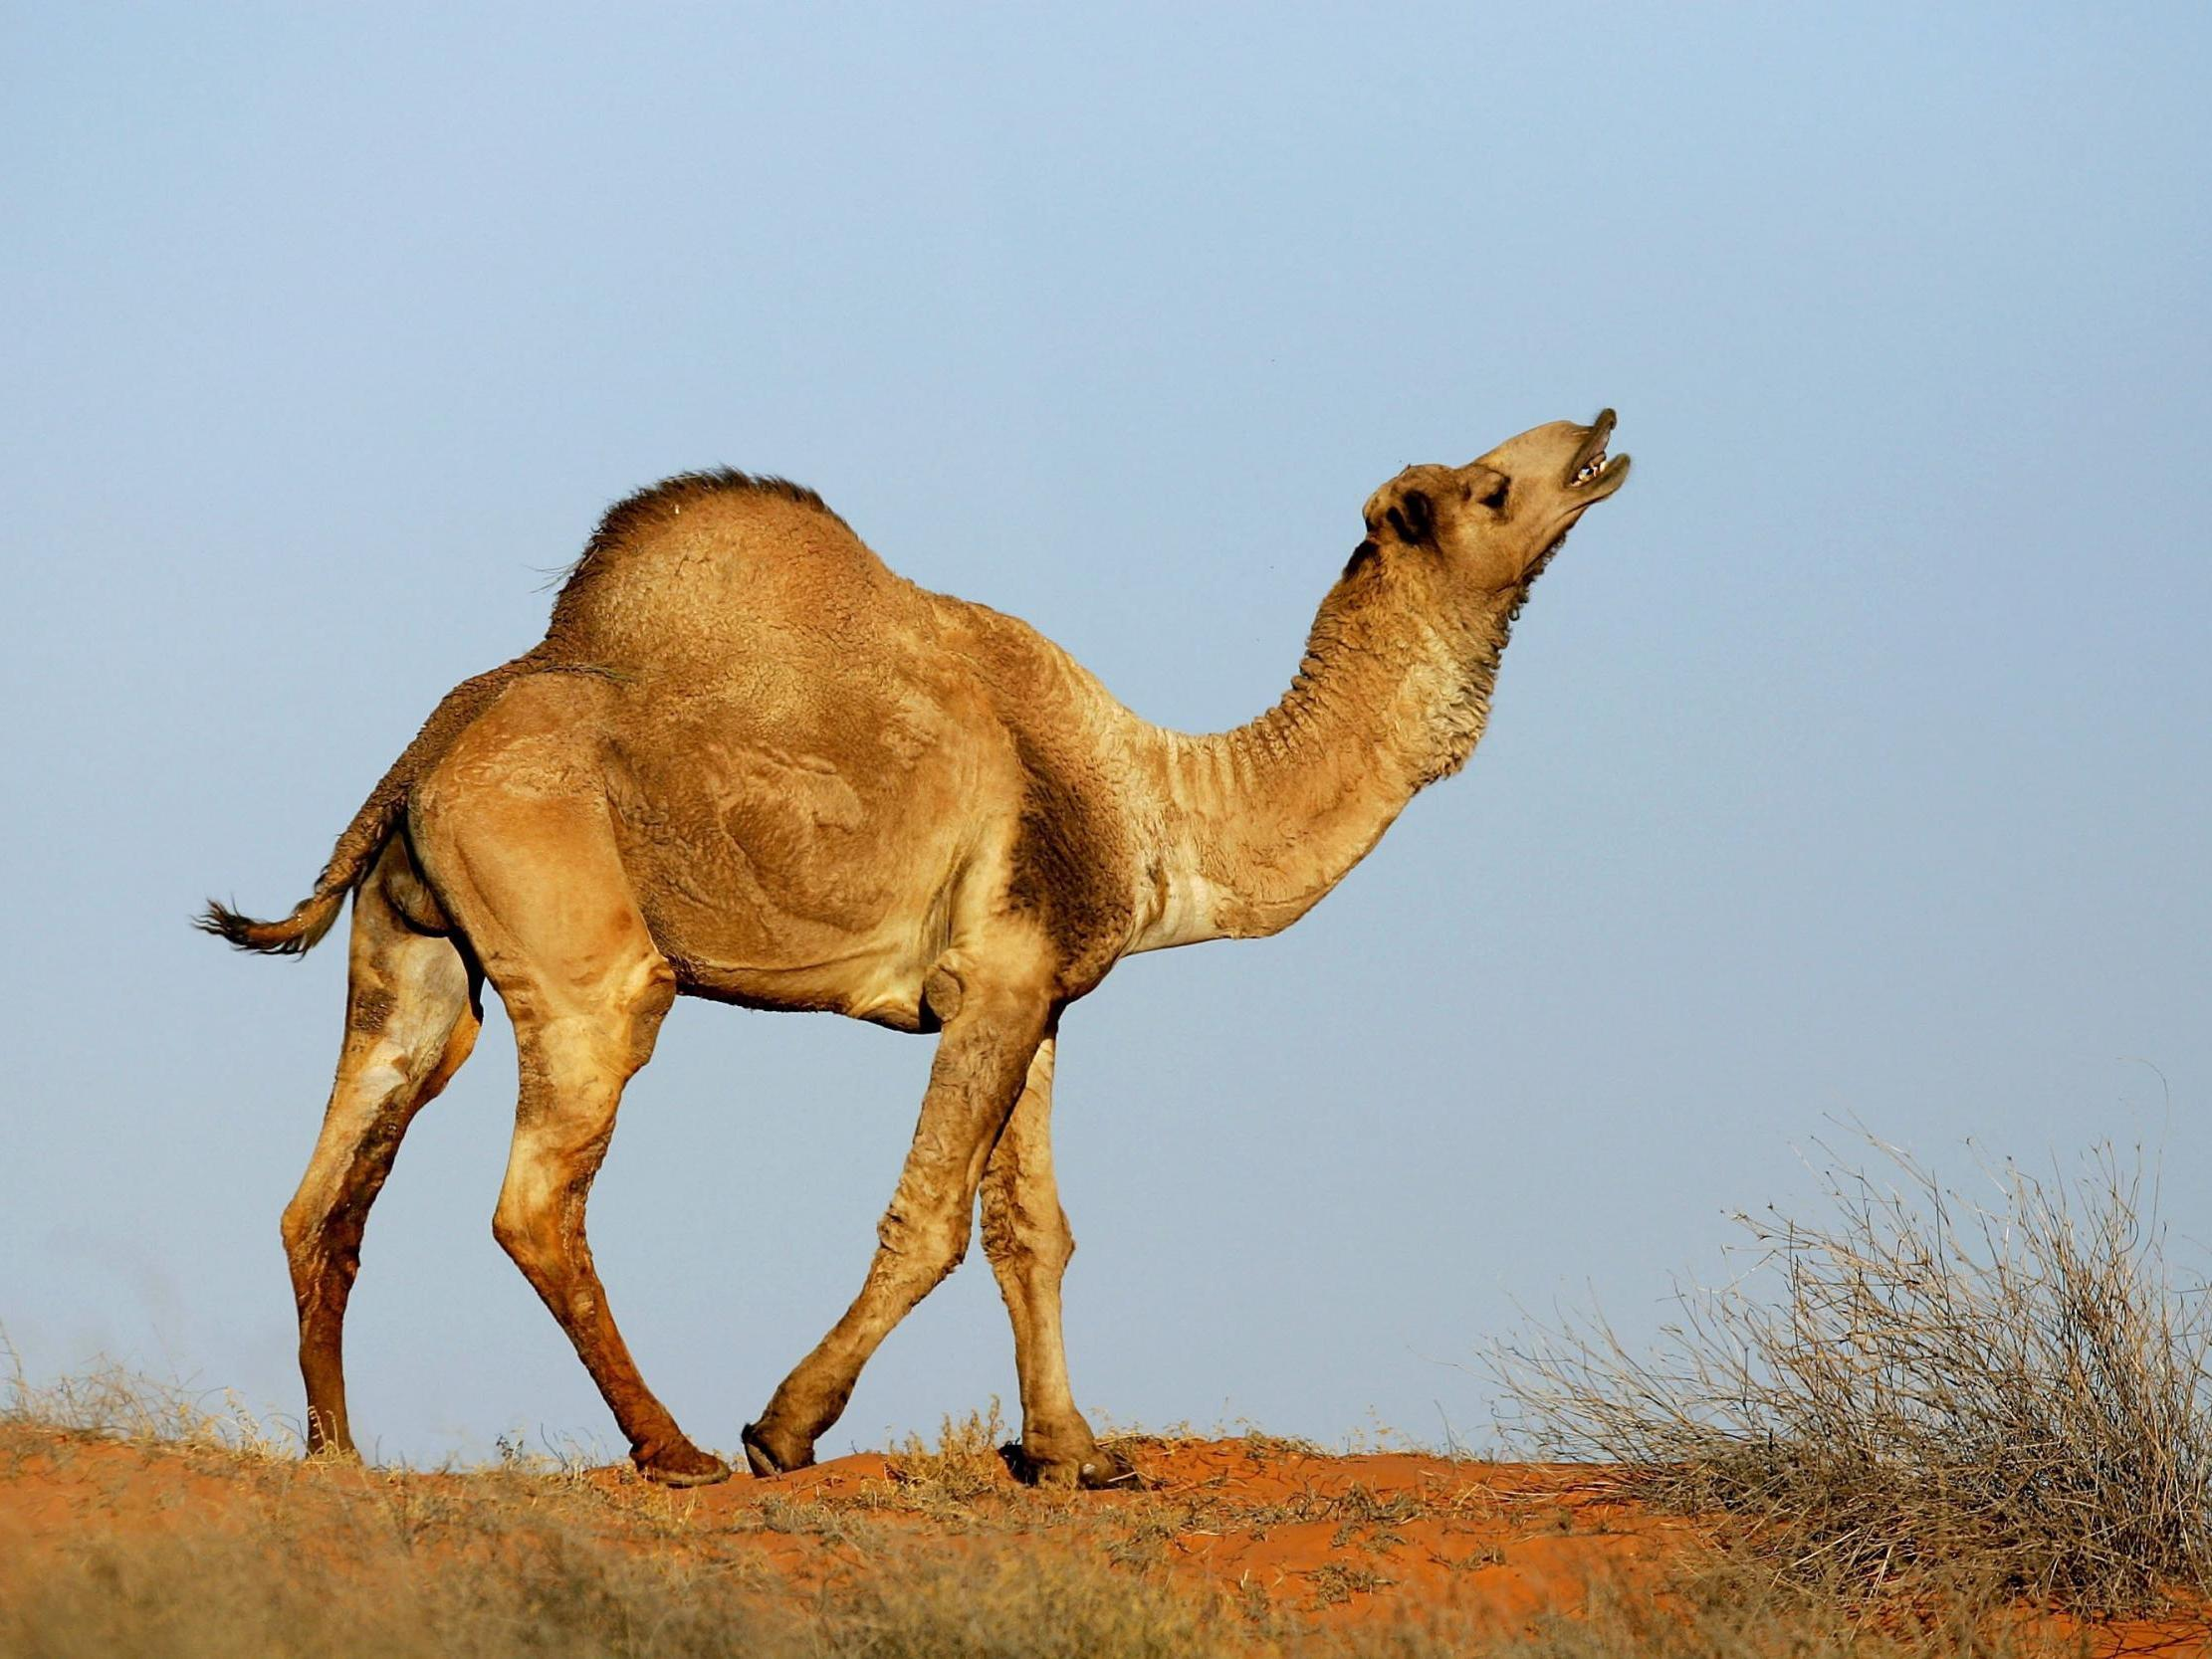 Australia: More than 10,000 camels to be shot from helicopters because they drink too much water